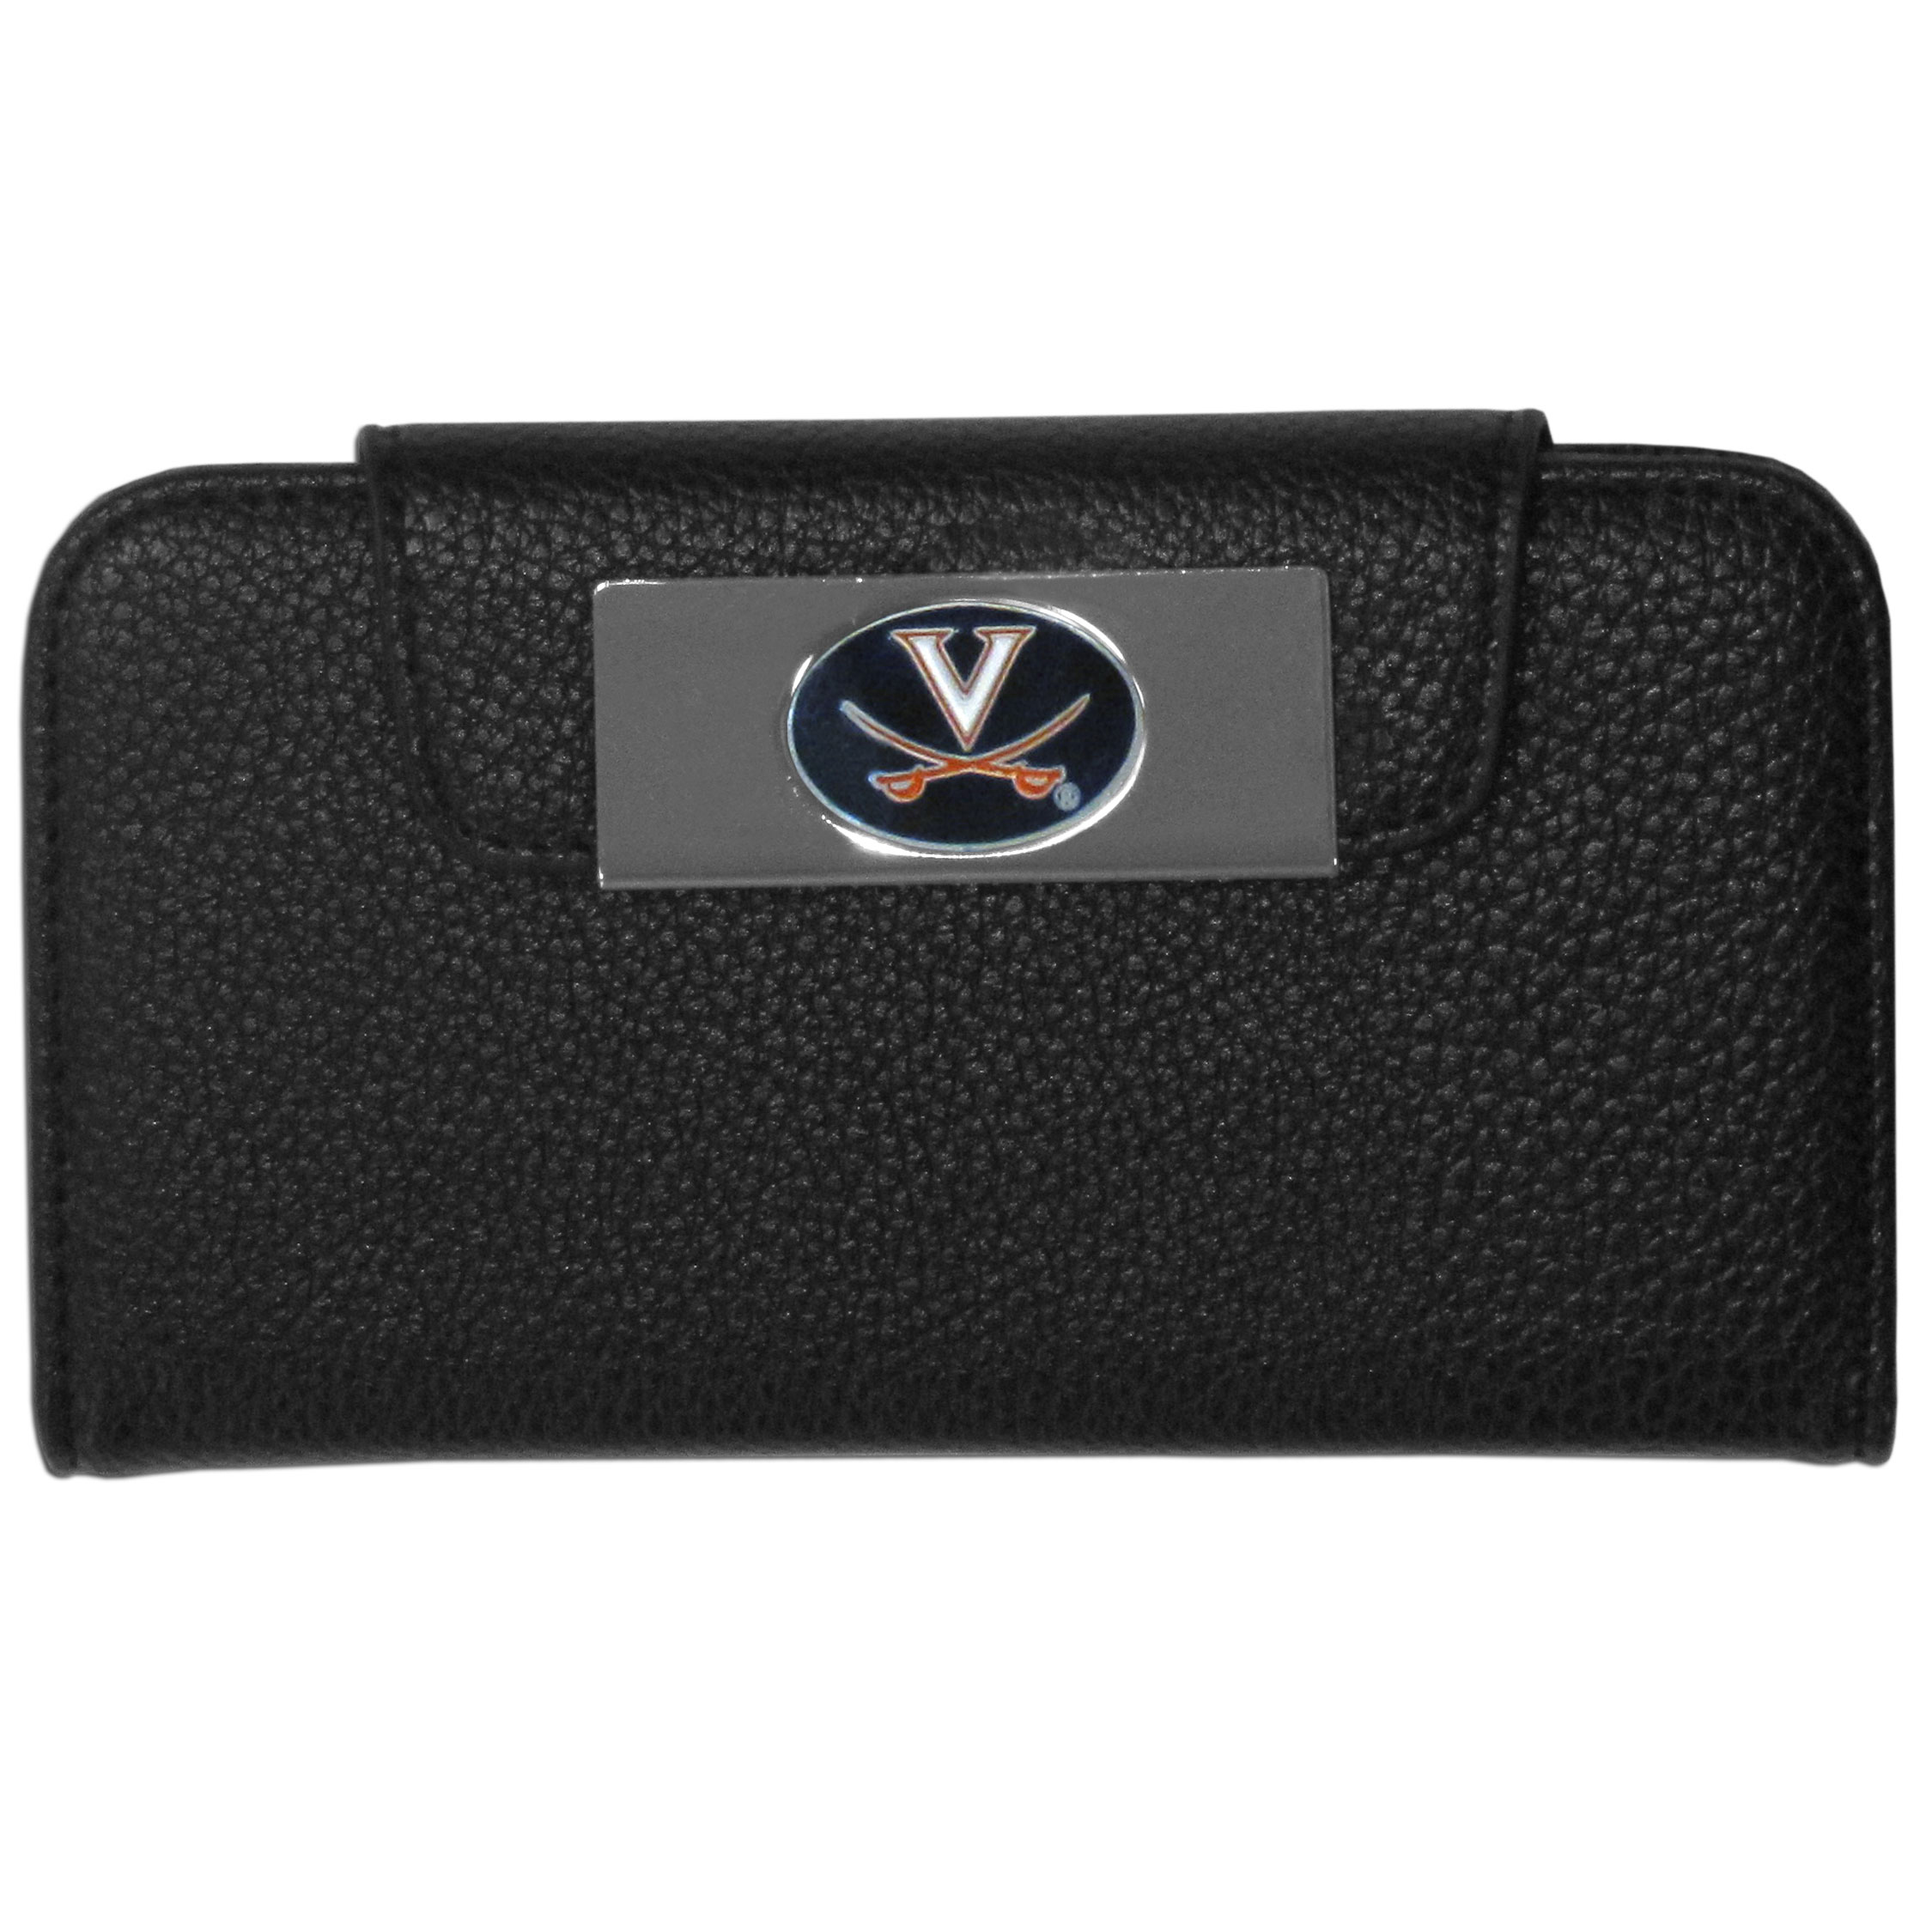 Virginia Cavaliers iPhone 5/5S Wallet Case - This new & wildly popular case is ideal for those who like to travel light! The stylish case has an inner hard shell that securely holds your phone while allowing complete access to the phone's functionality. The flip cover has slots for credit cards, business cards and identification. The magnetic flip cover has a metal Virginia Cavaliers emblem on a high polish chrome backing. Fits the iPhone 5/5S